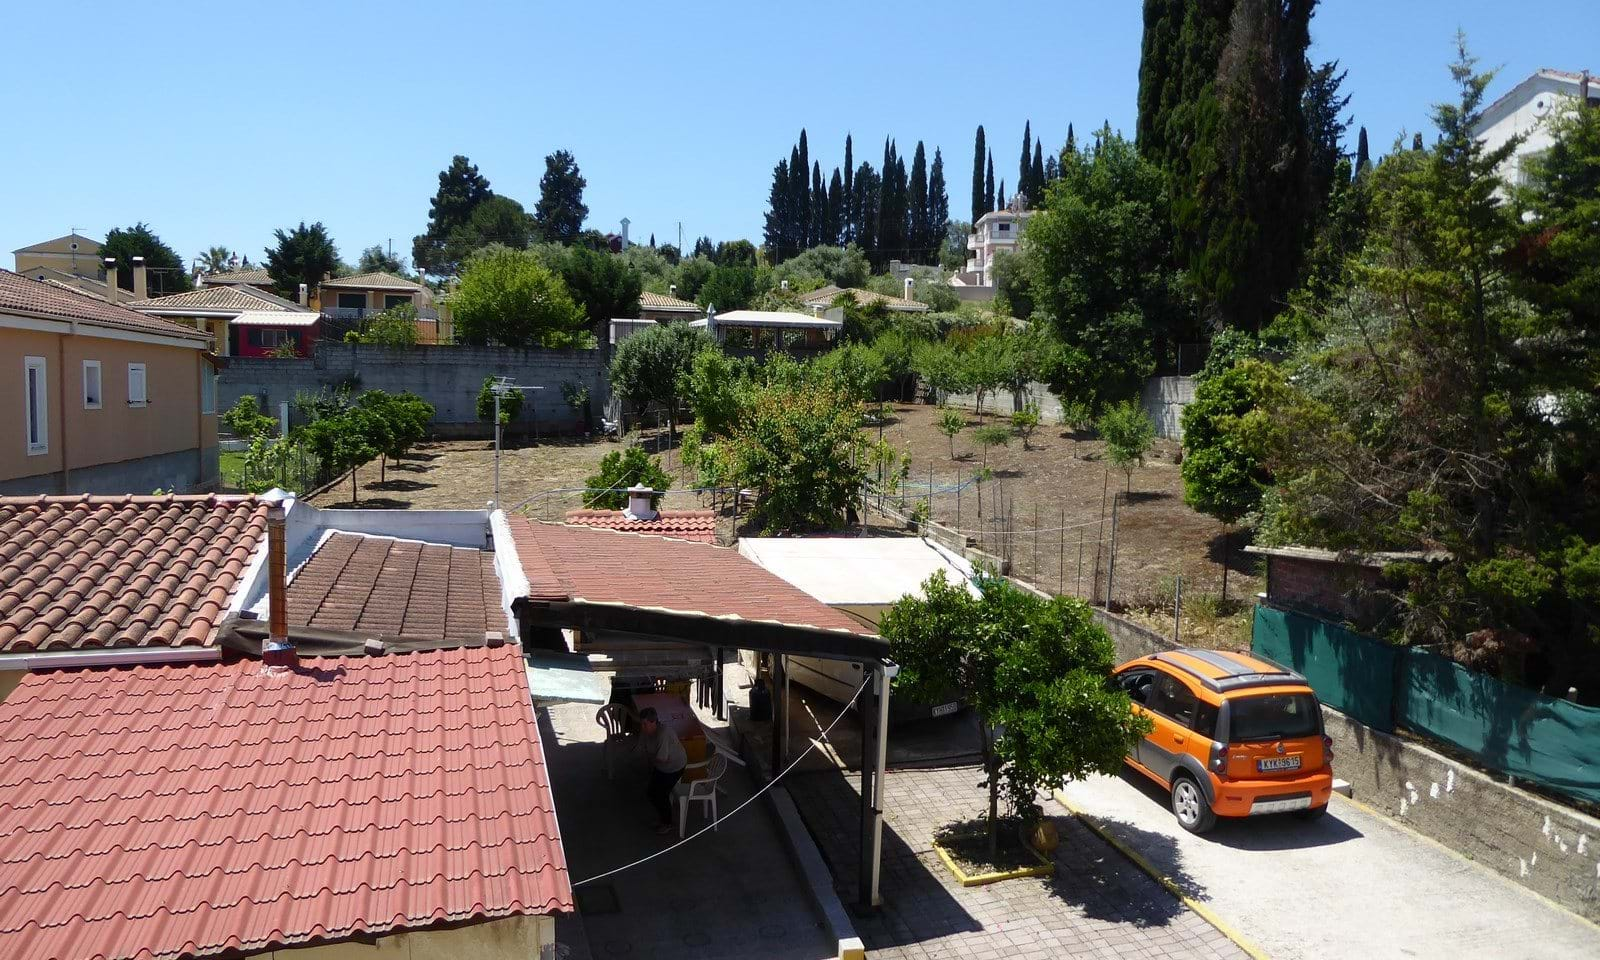 Property for sale near Corfu town